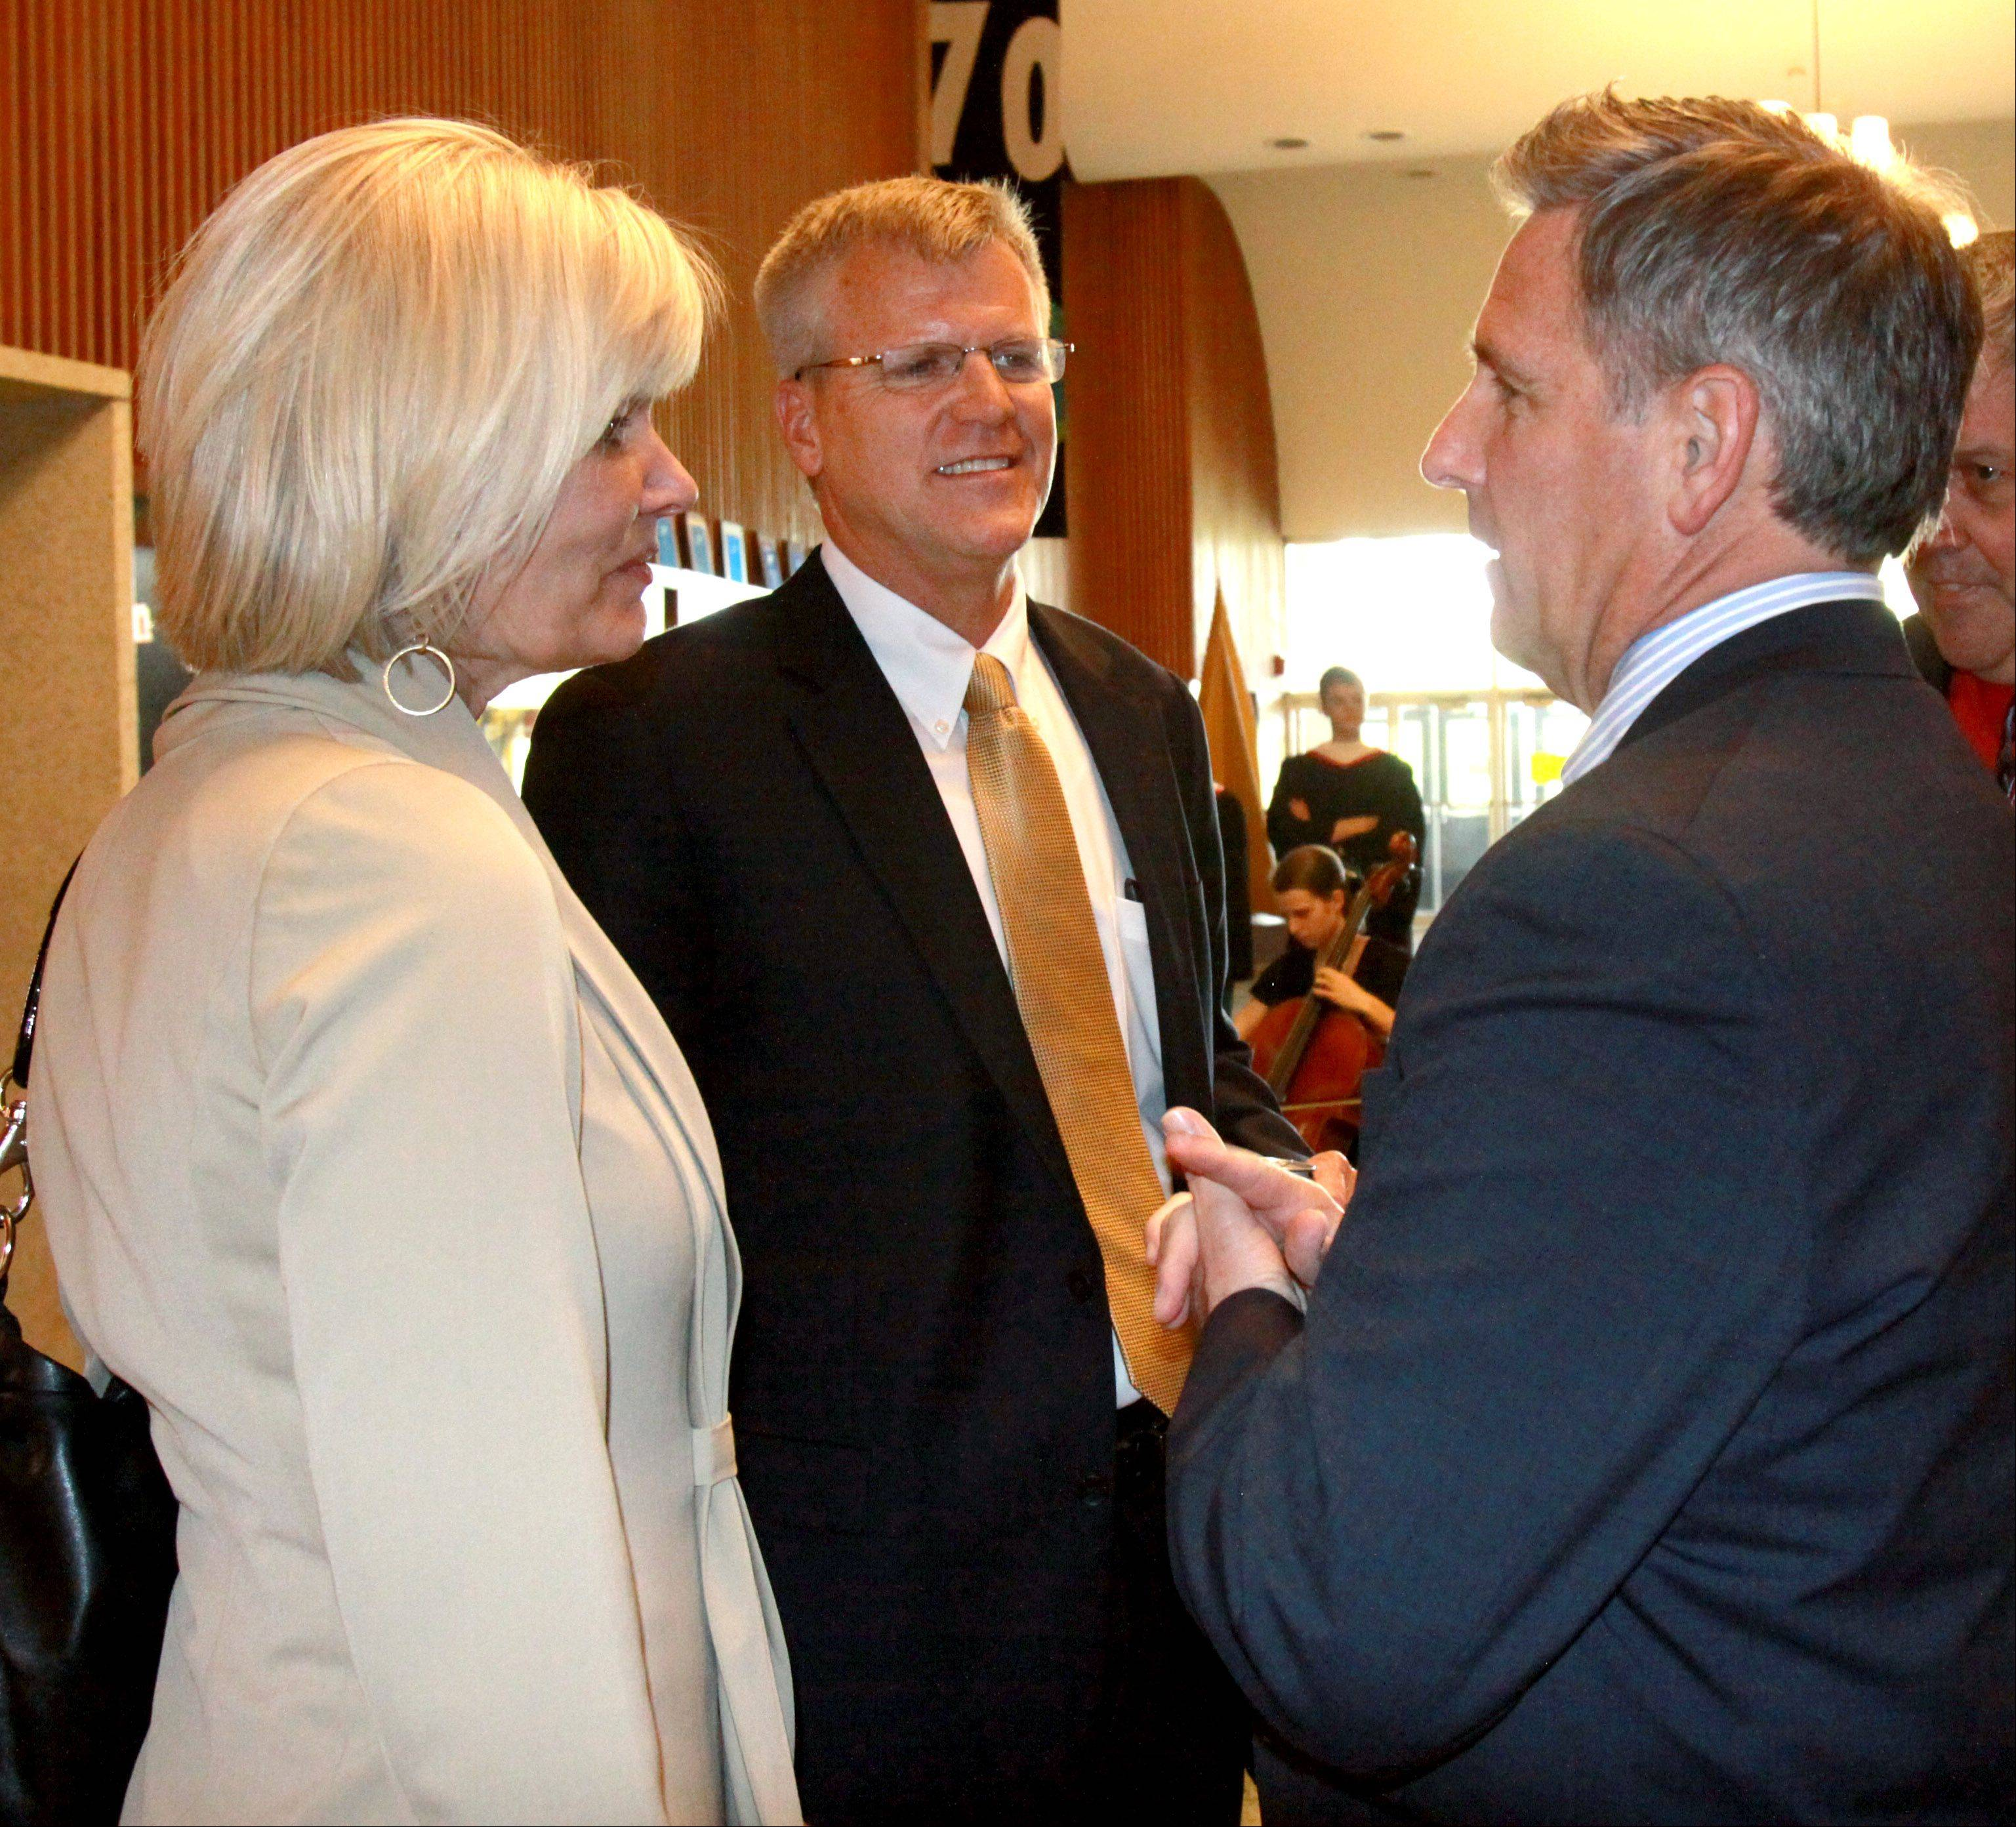 New Glenbard District 87 Superintendent David Larson, center, and his wife Shelayne, chat with Board President Rich Heim at a meet-and-greet reception Monday at Glenbard East in Lombard.